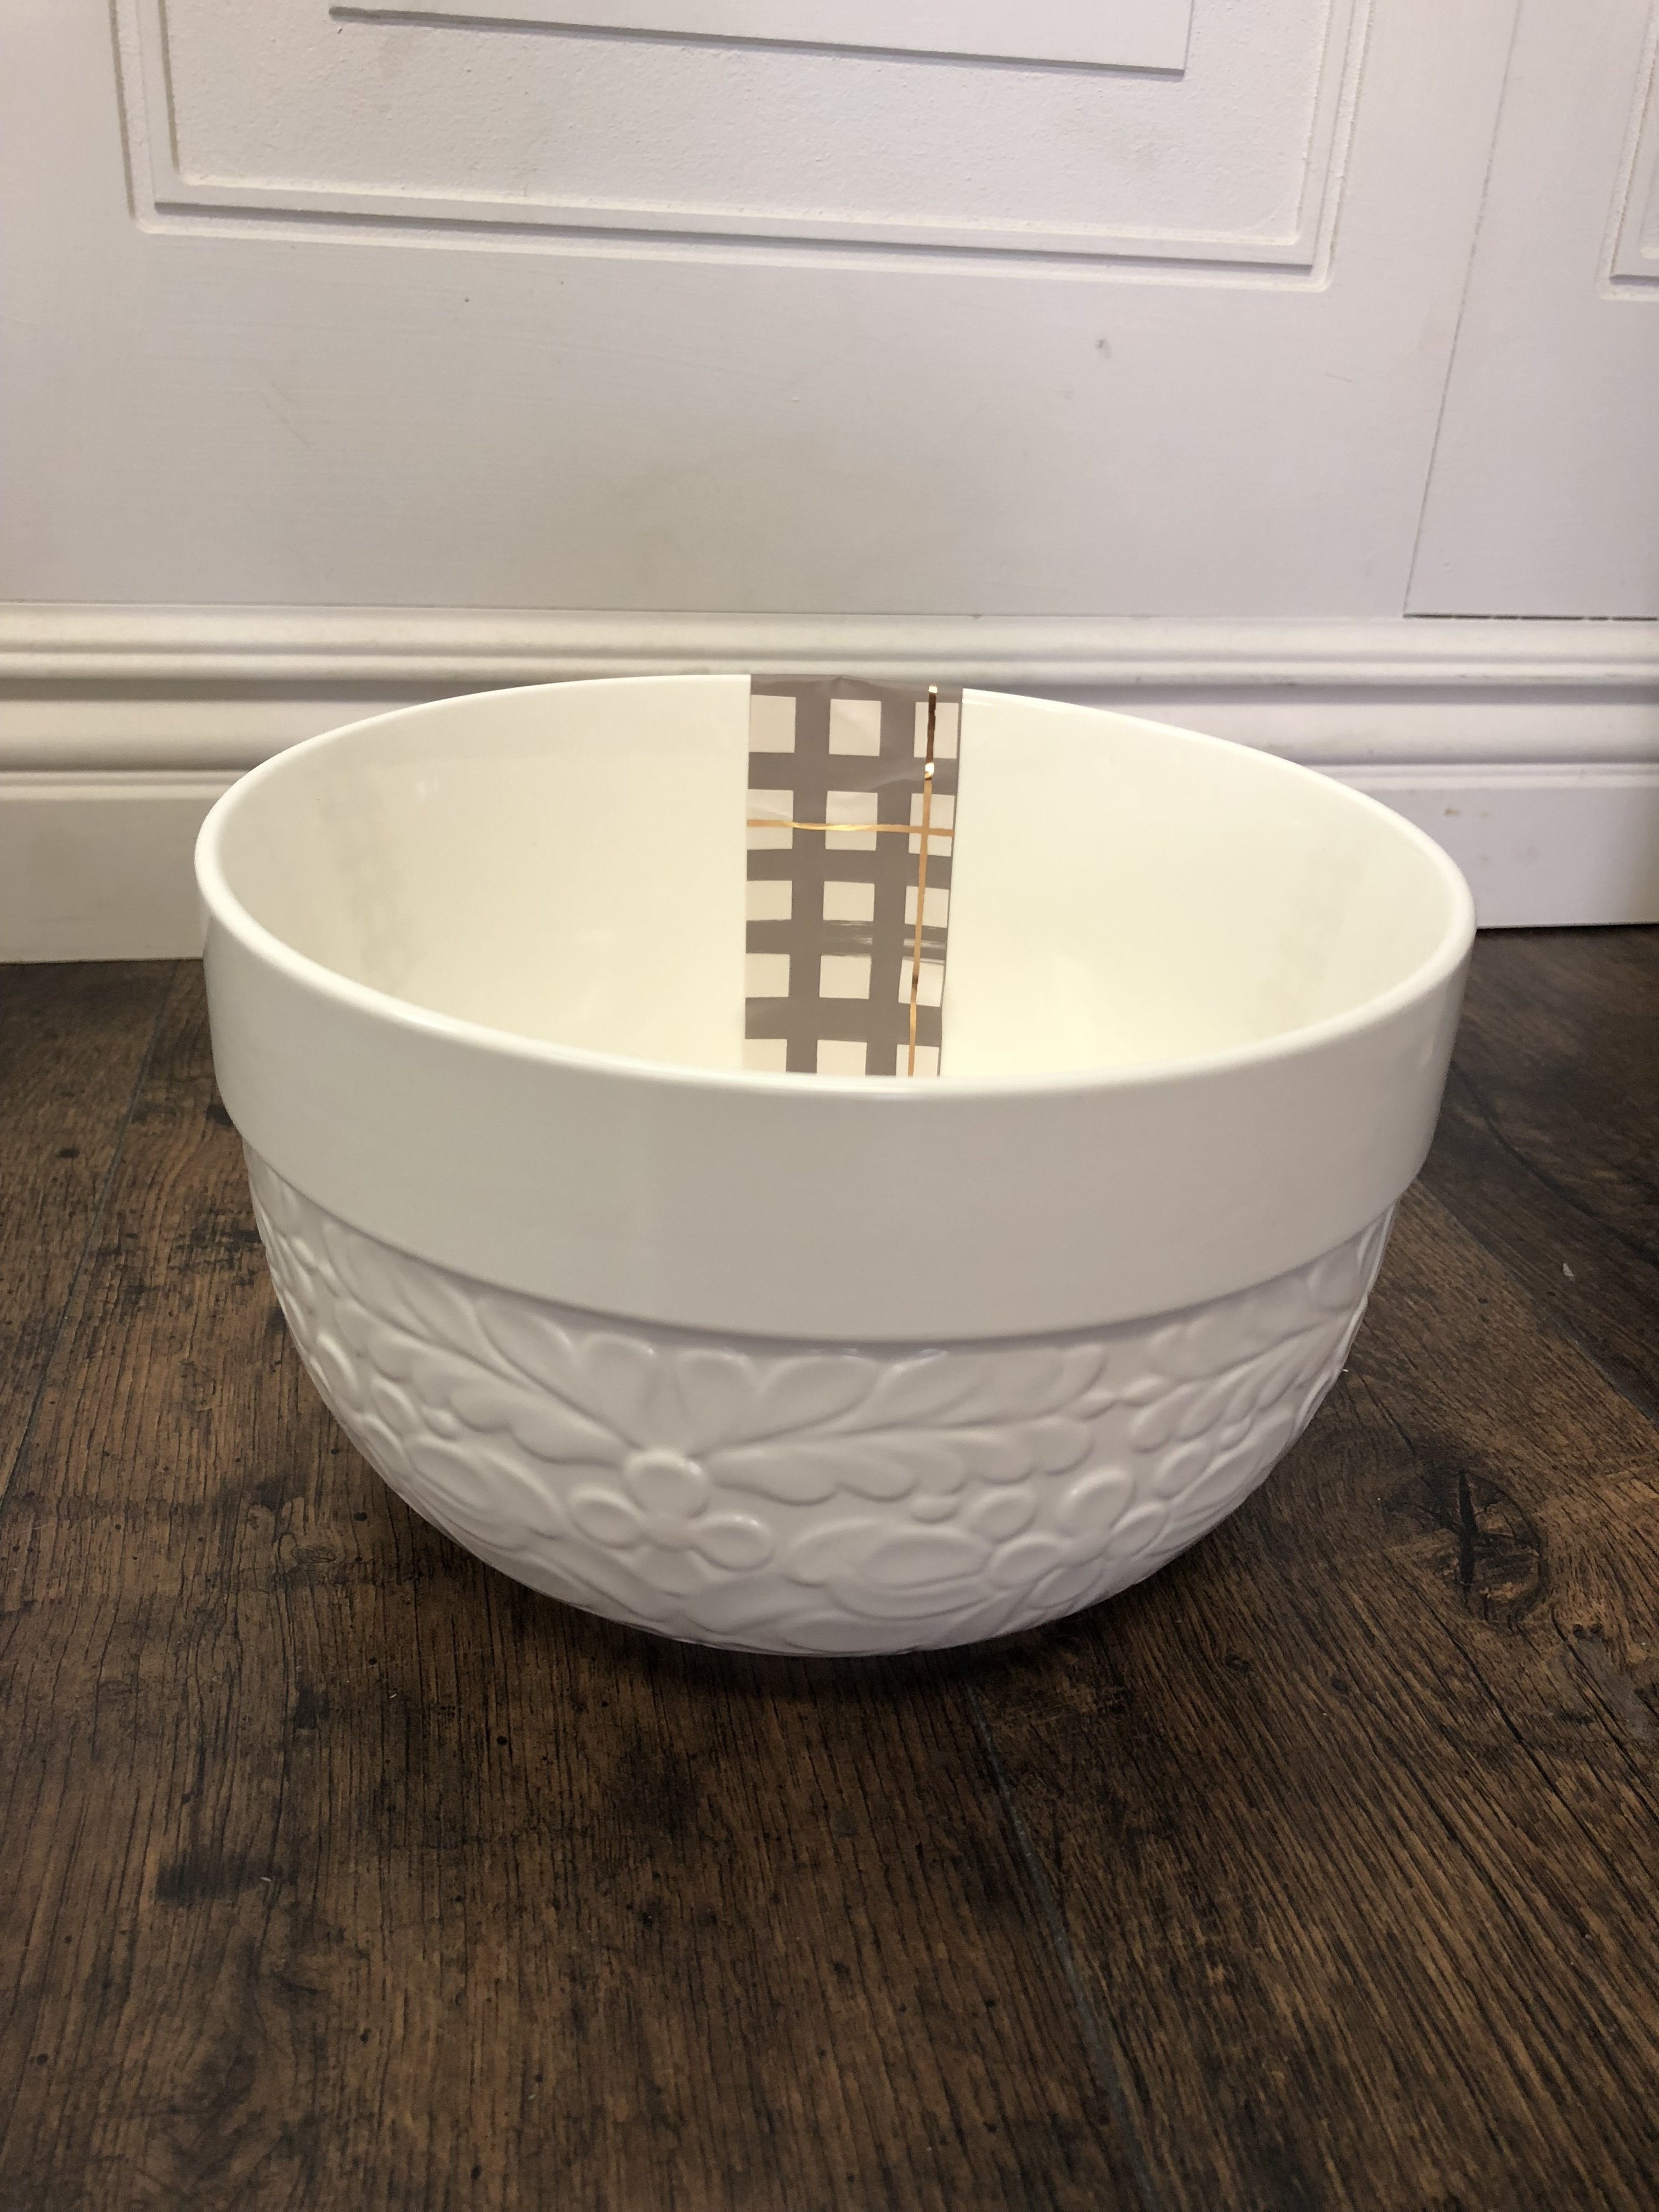 Pantry Small Ceramic Mixing Bowl 842094155200